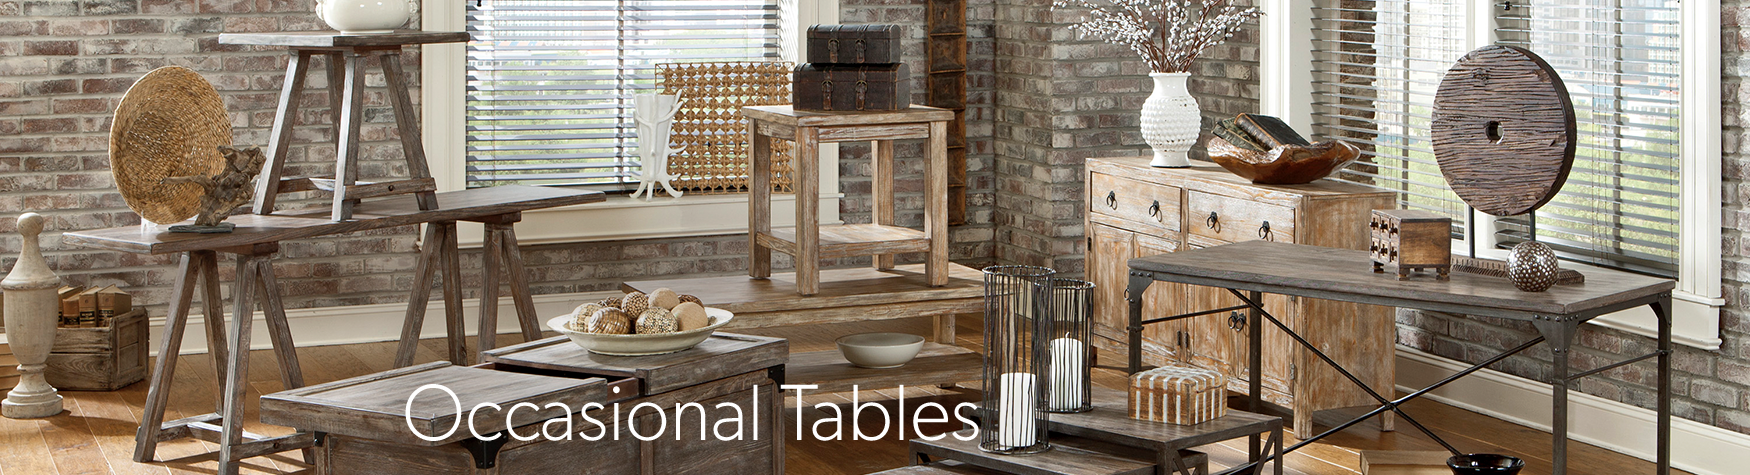 occasioals-table-banner.png